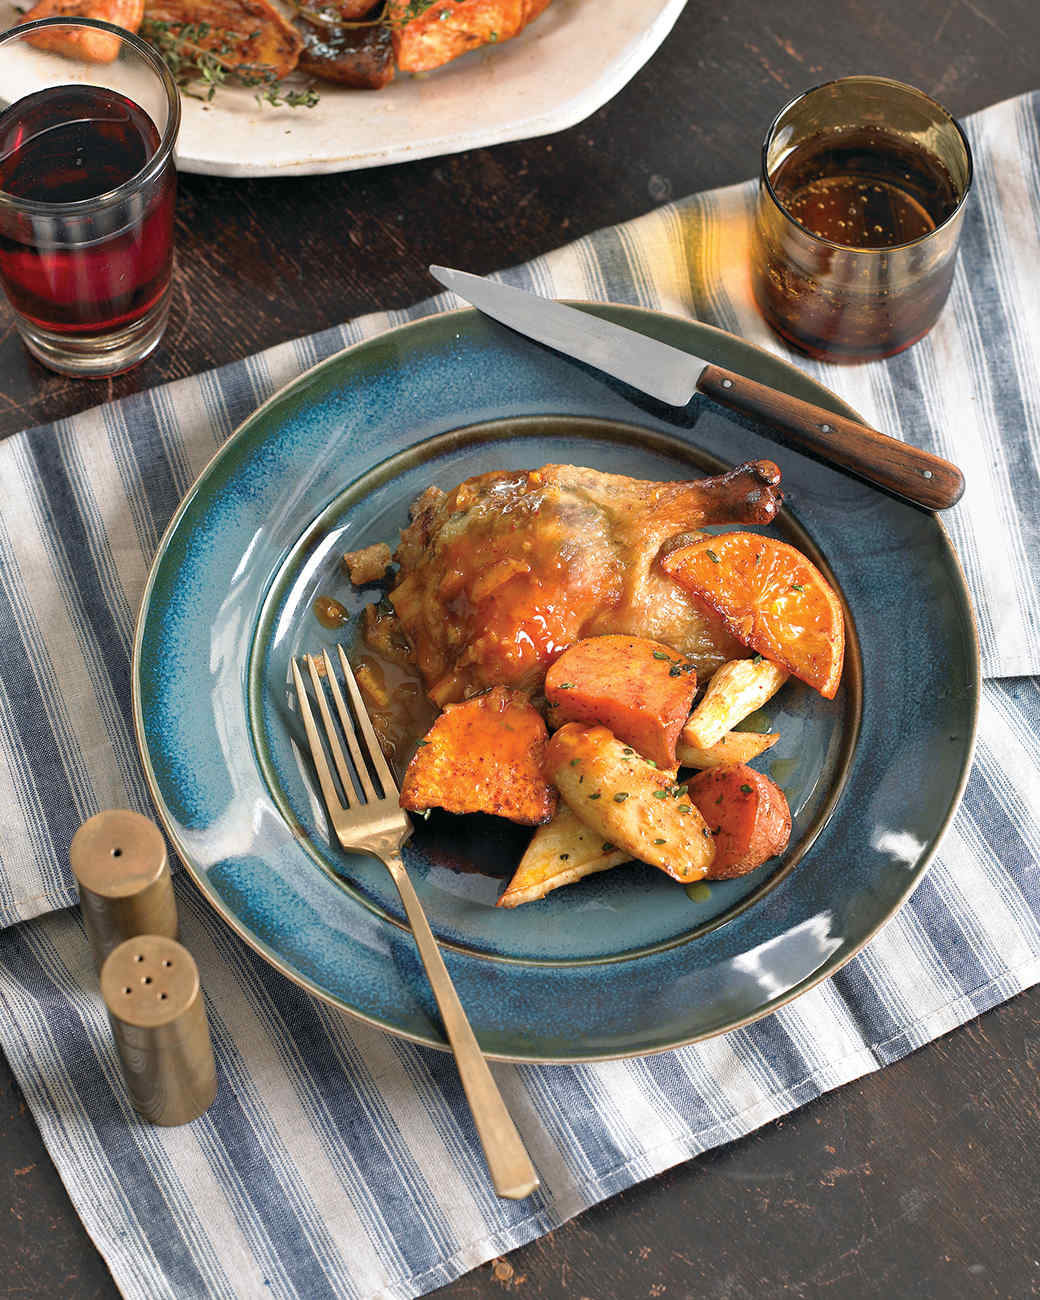 Roasted Sweet Potatoes and Parsnips with Chili Powder